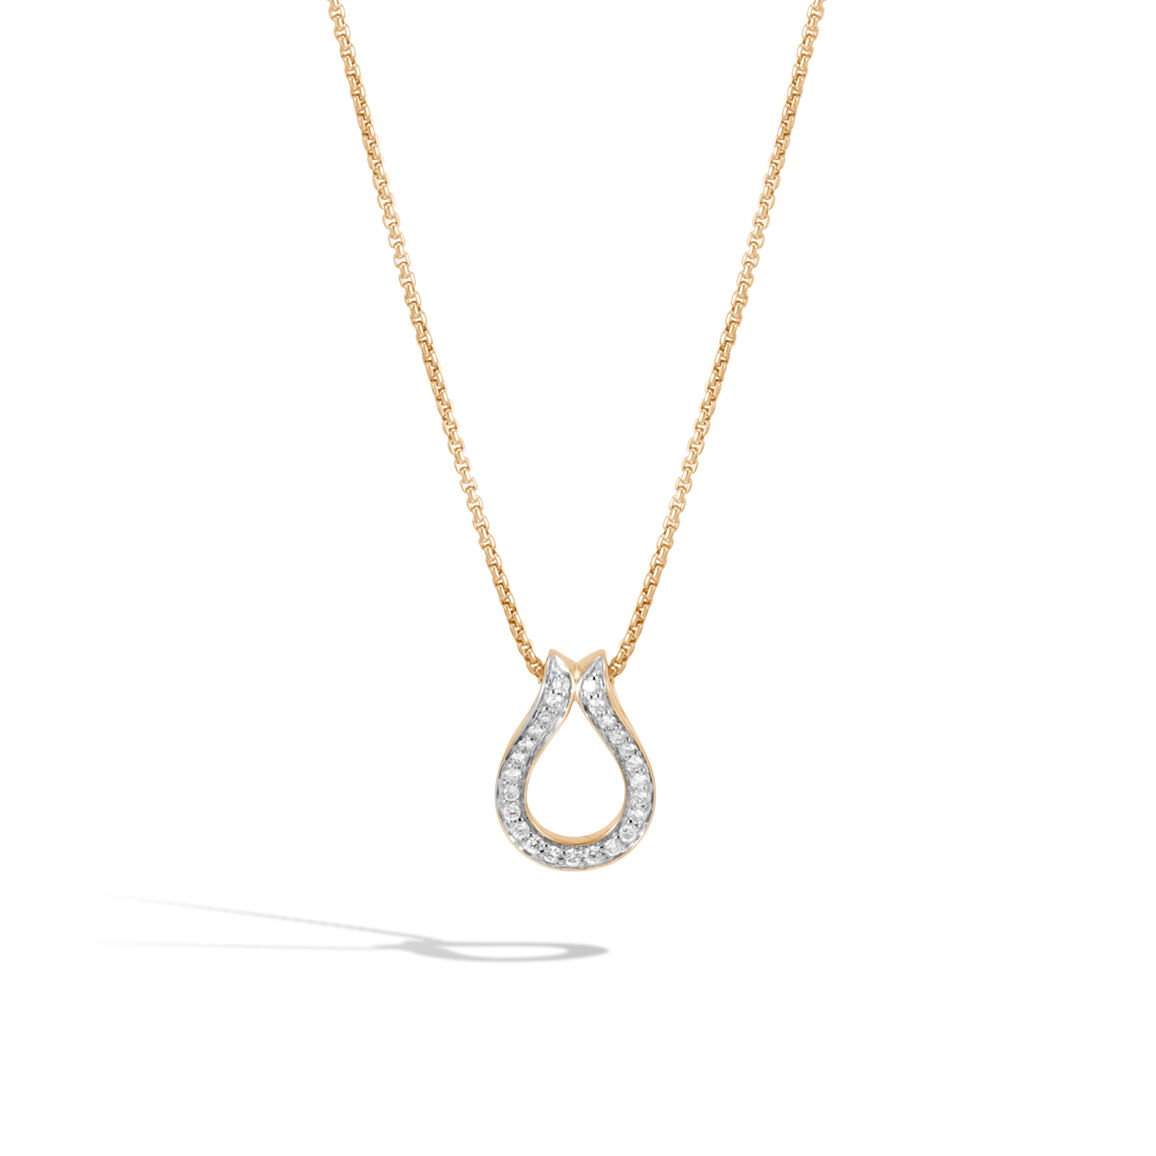 Classic Chain Pendant Necklace in 18K Gold with Diamonds